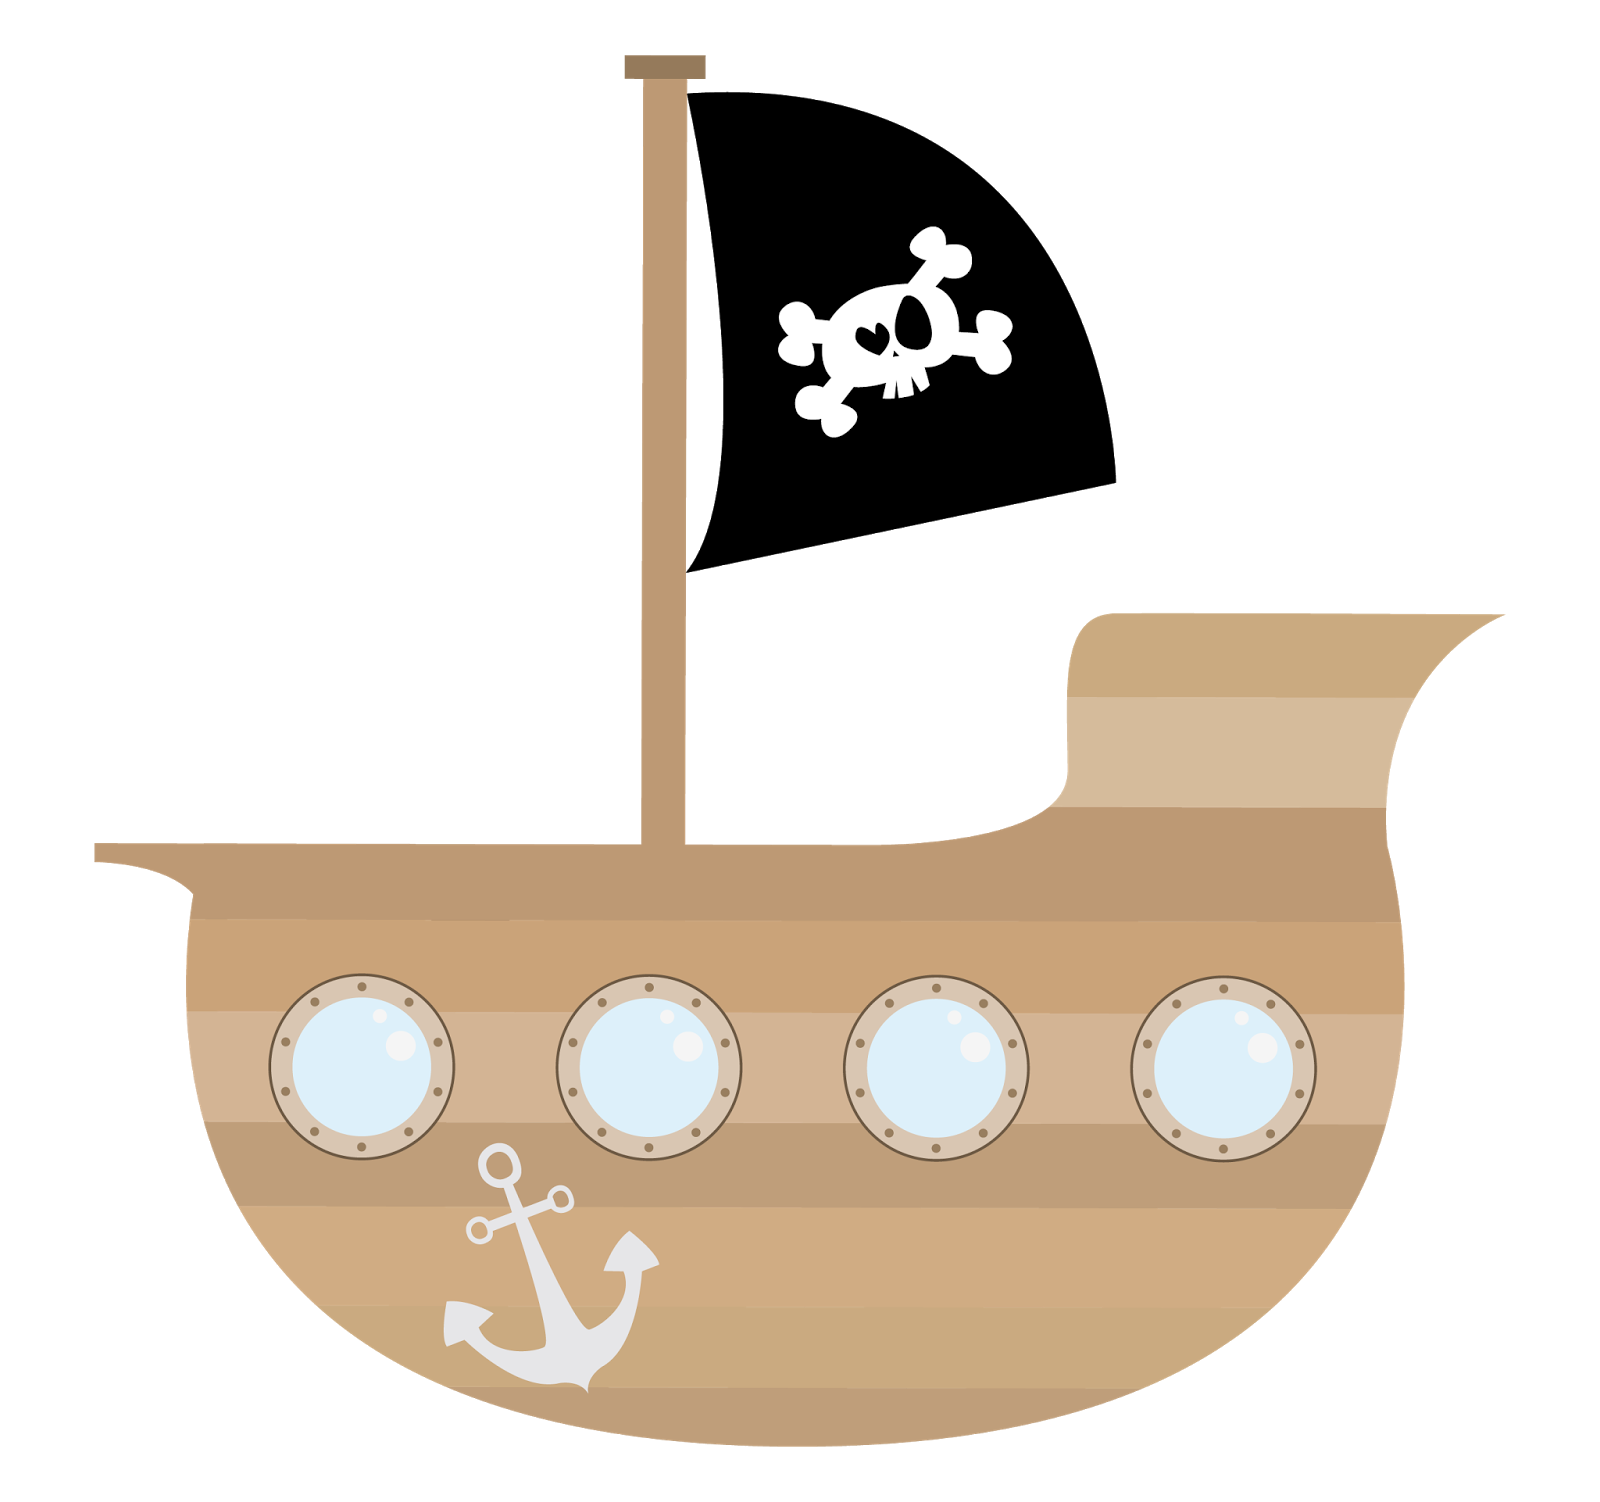 Peter pan ship png. Pirate clipart kid story